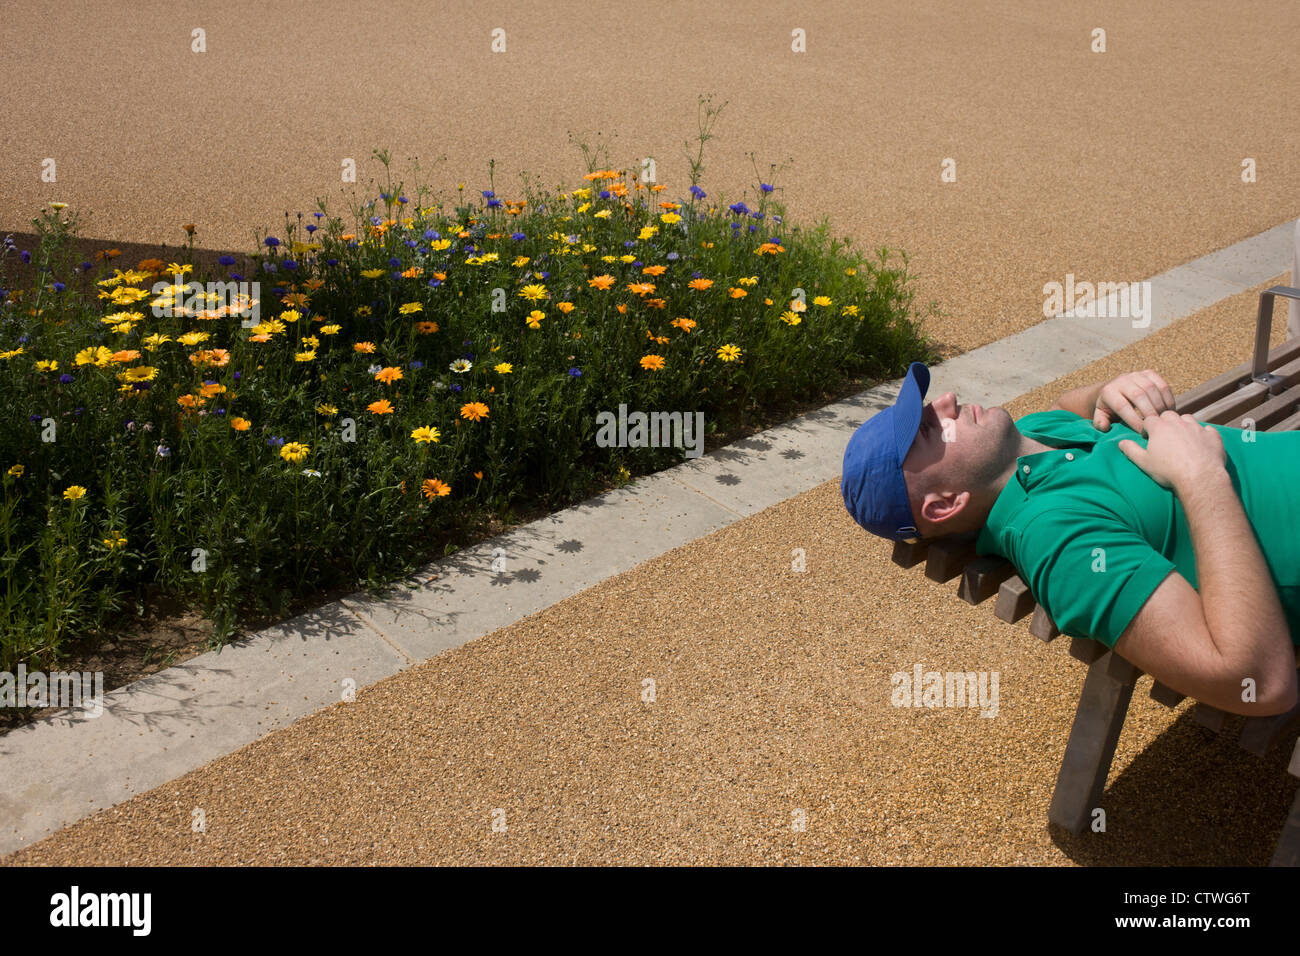 2012 More Than 5 Stock Photos & 2012 More Than 5 Stock Images - Alamy